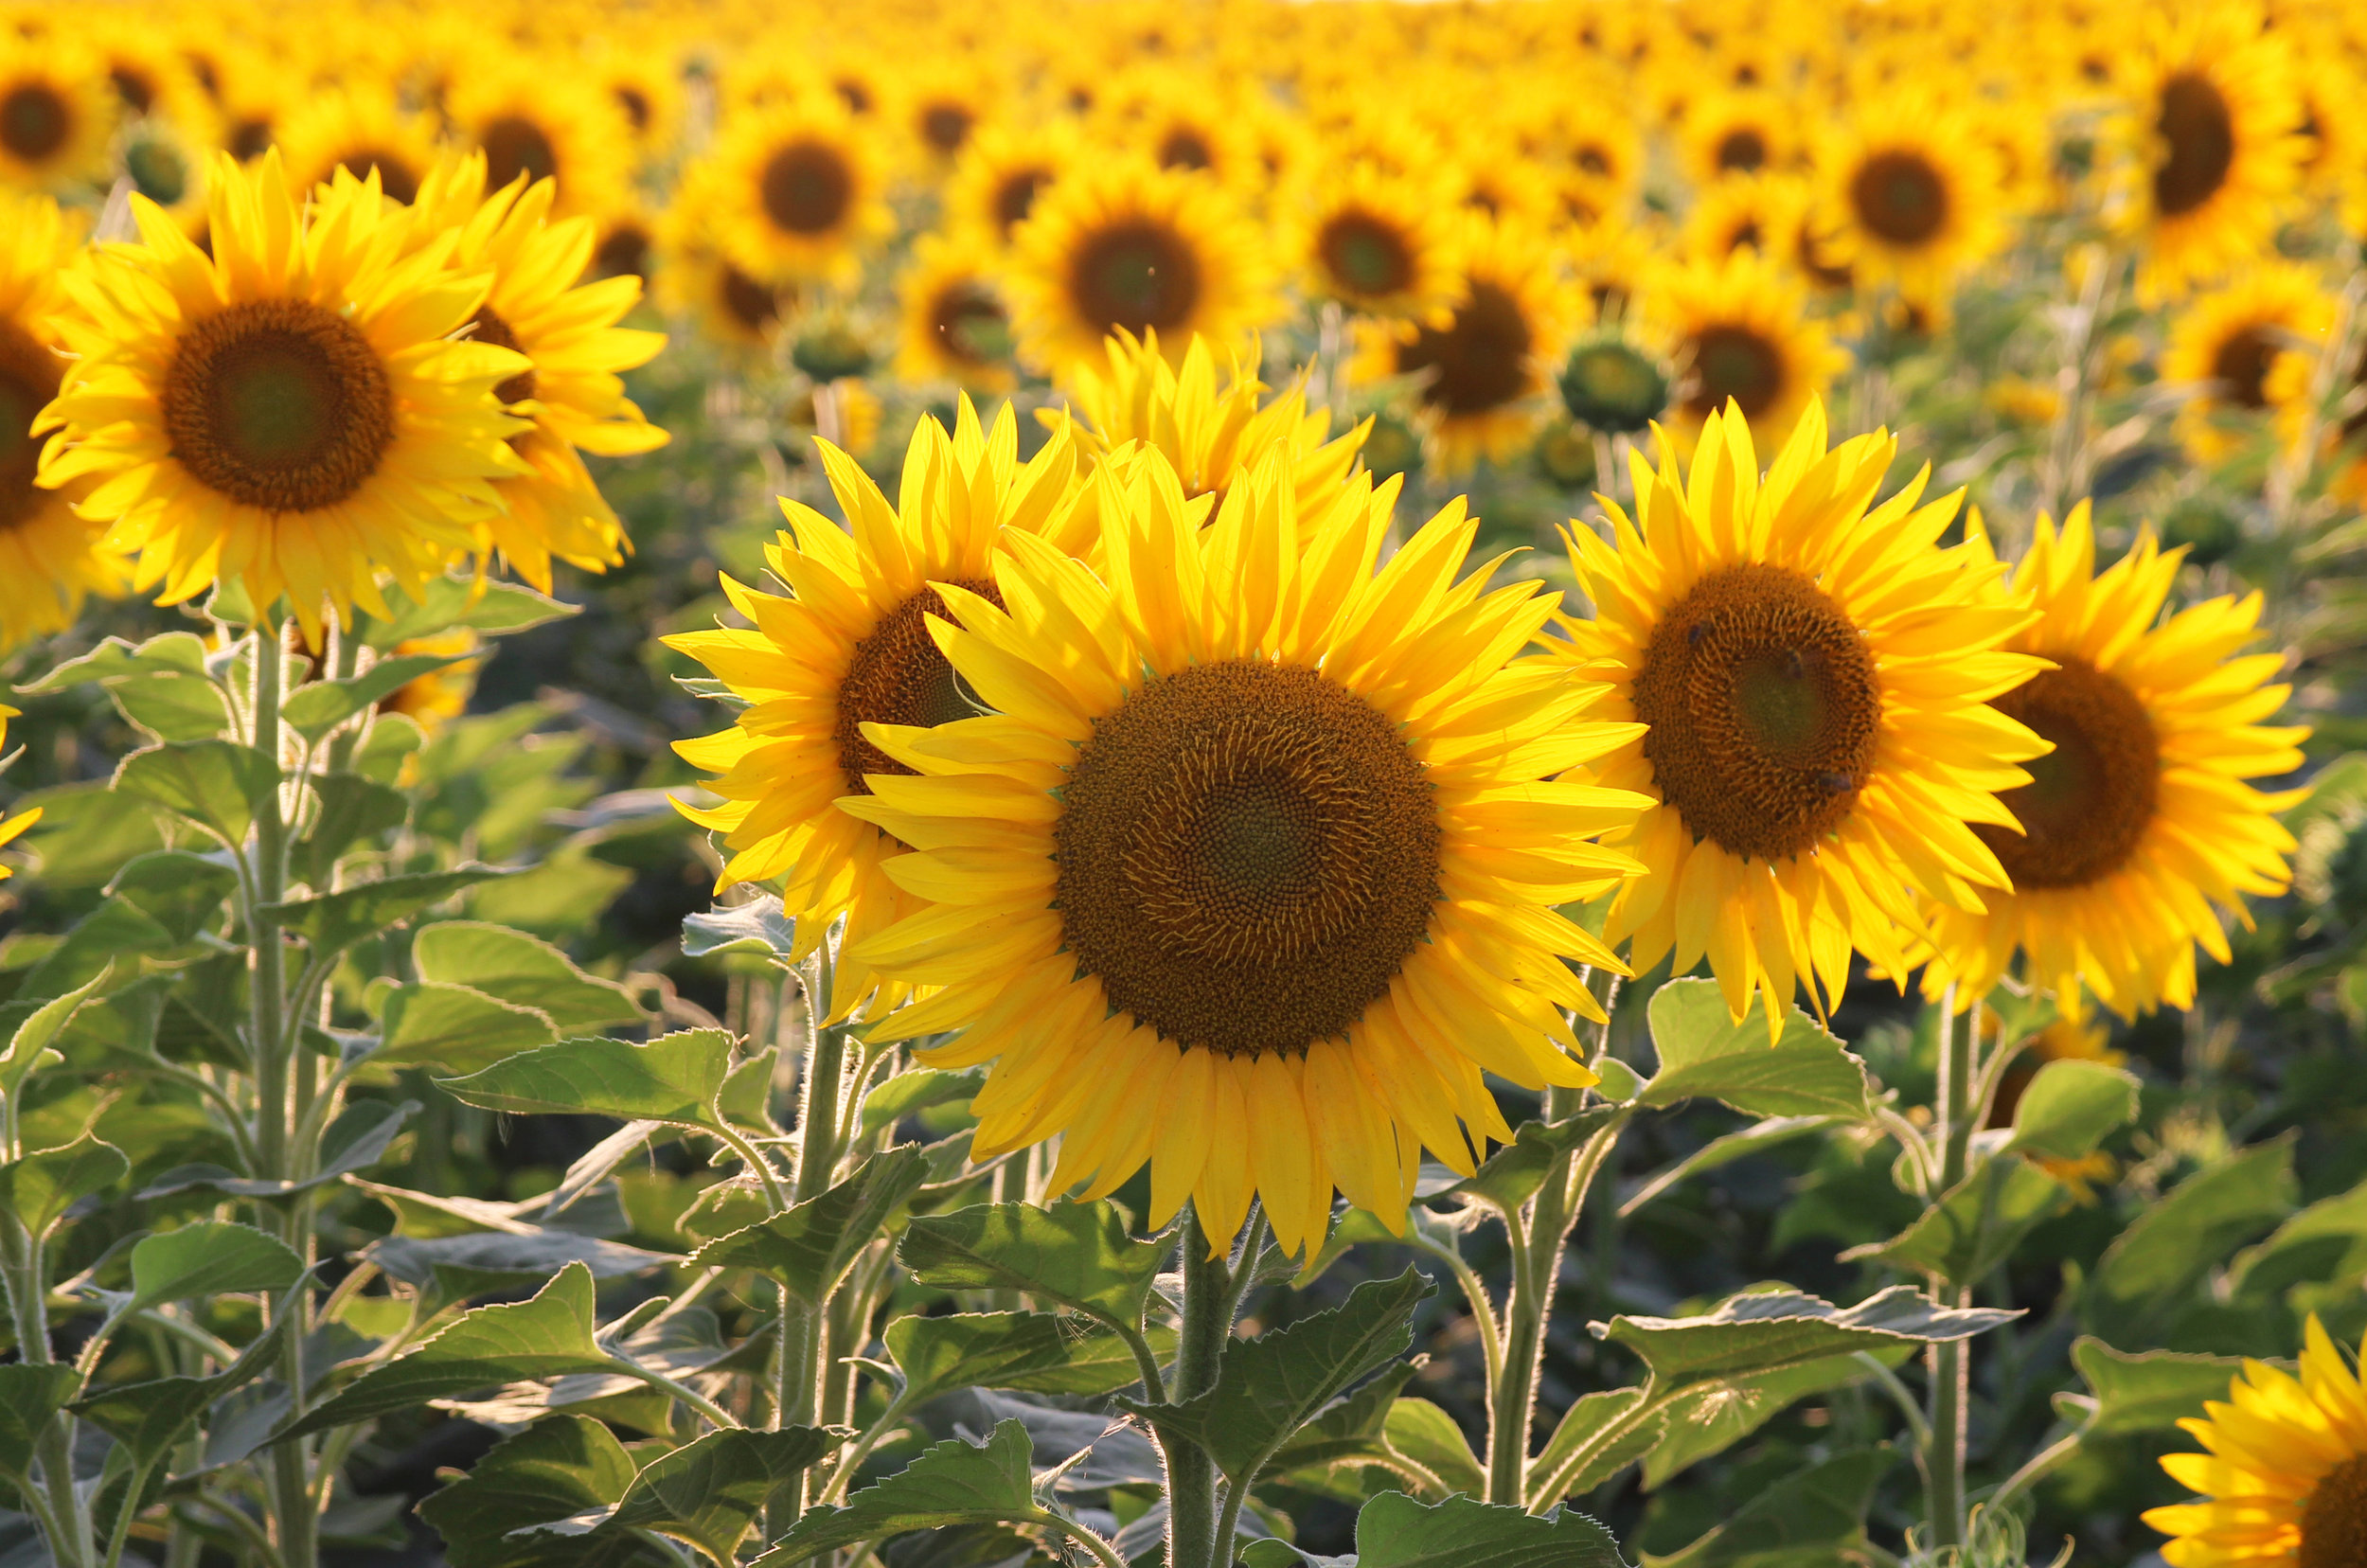 Helianthus annuus (Common sunflower) 2.jpg